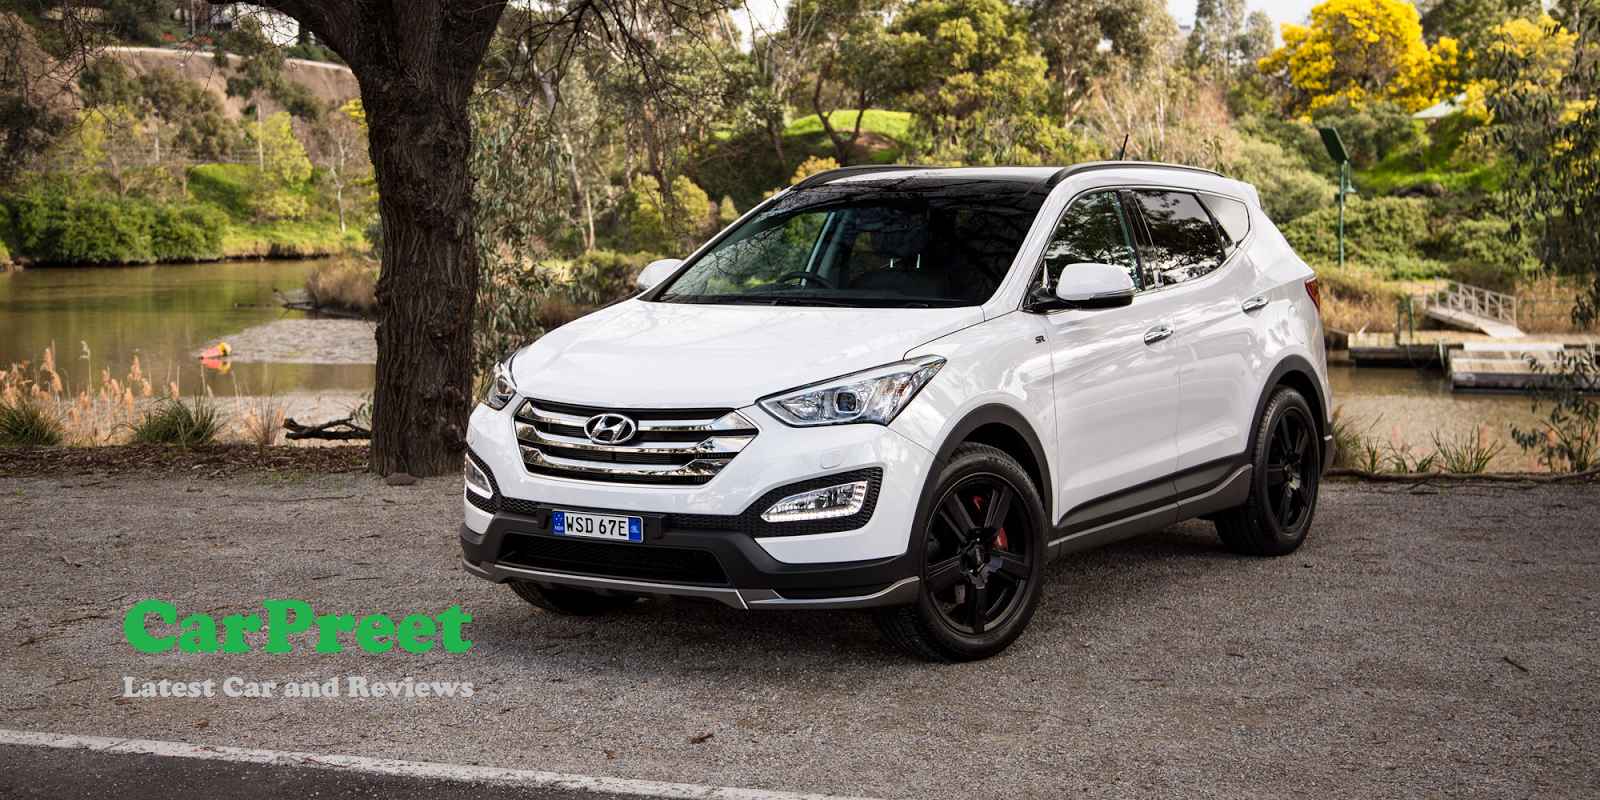 2016 hyundai santa fe sr review latest cars and reviews. Black Bedroom Furniture Sets. Home Design Ideas